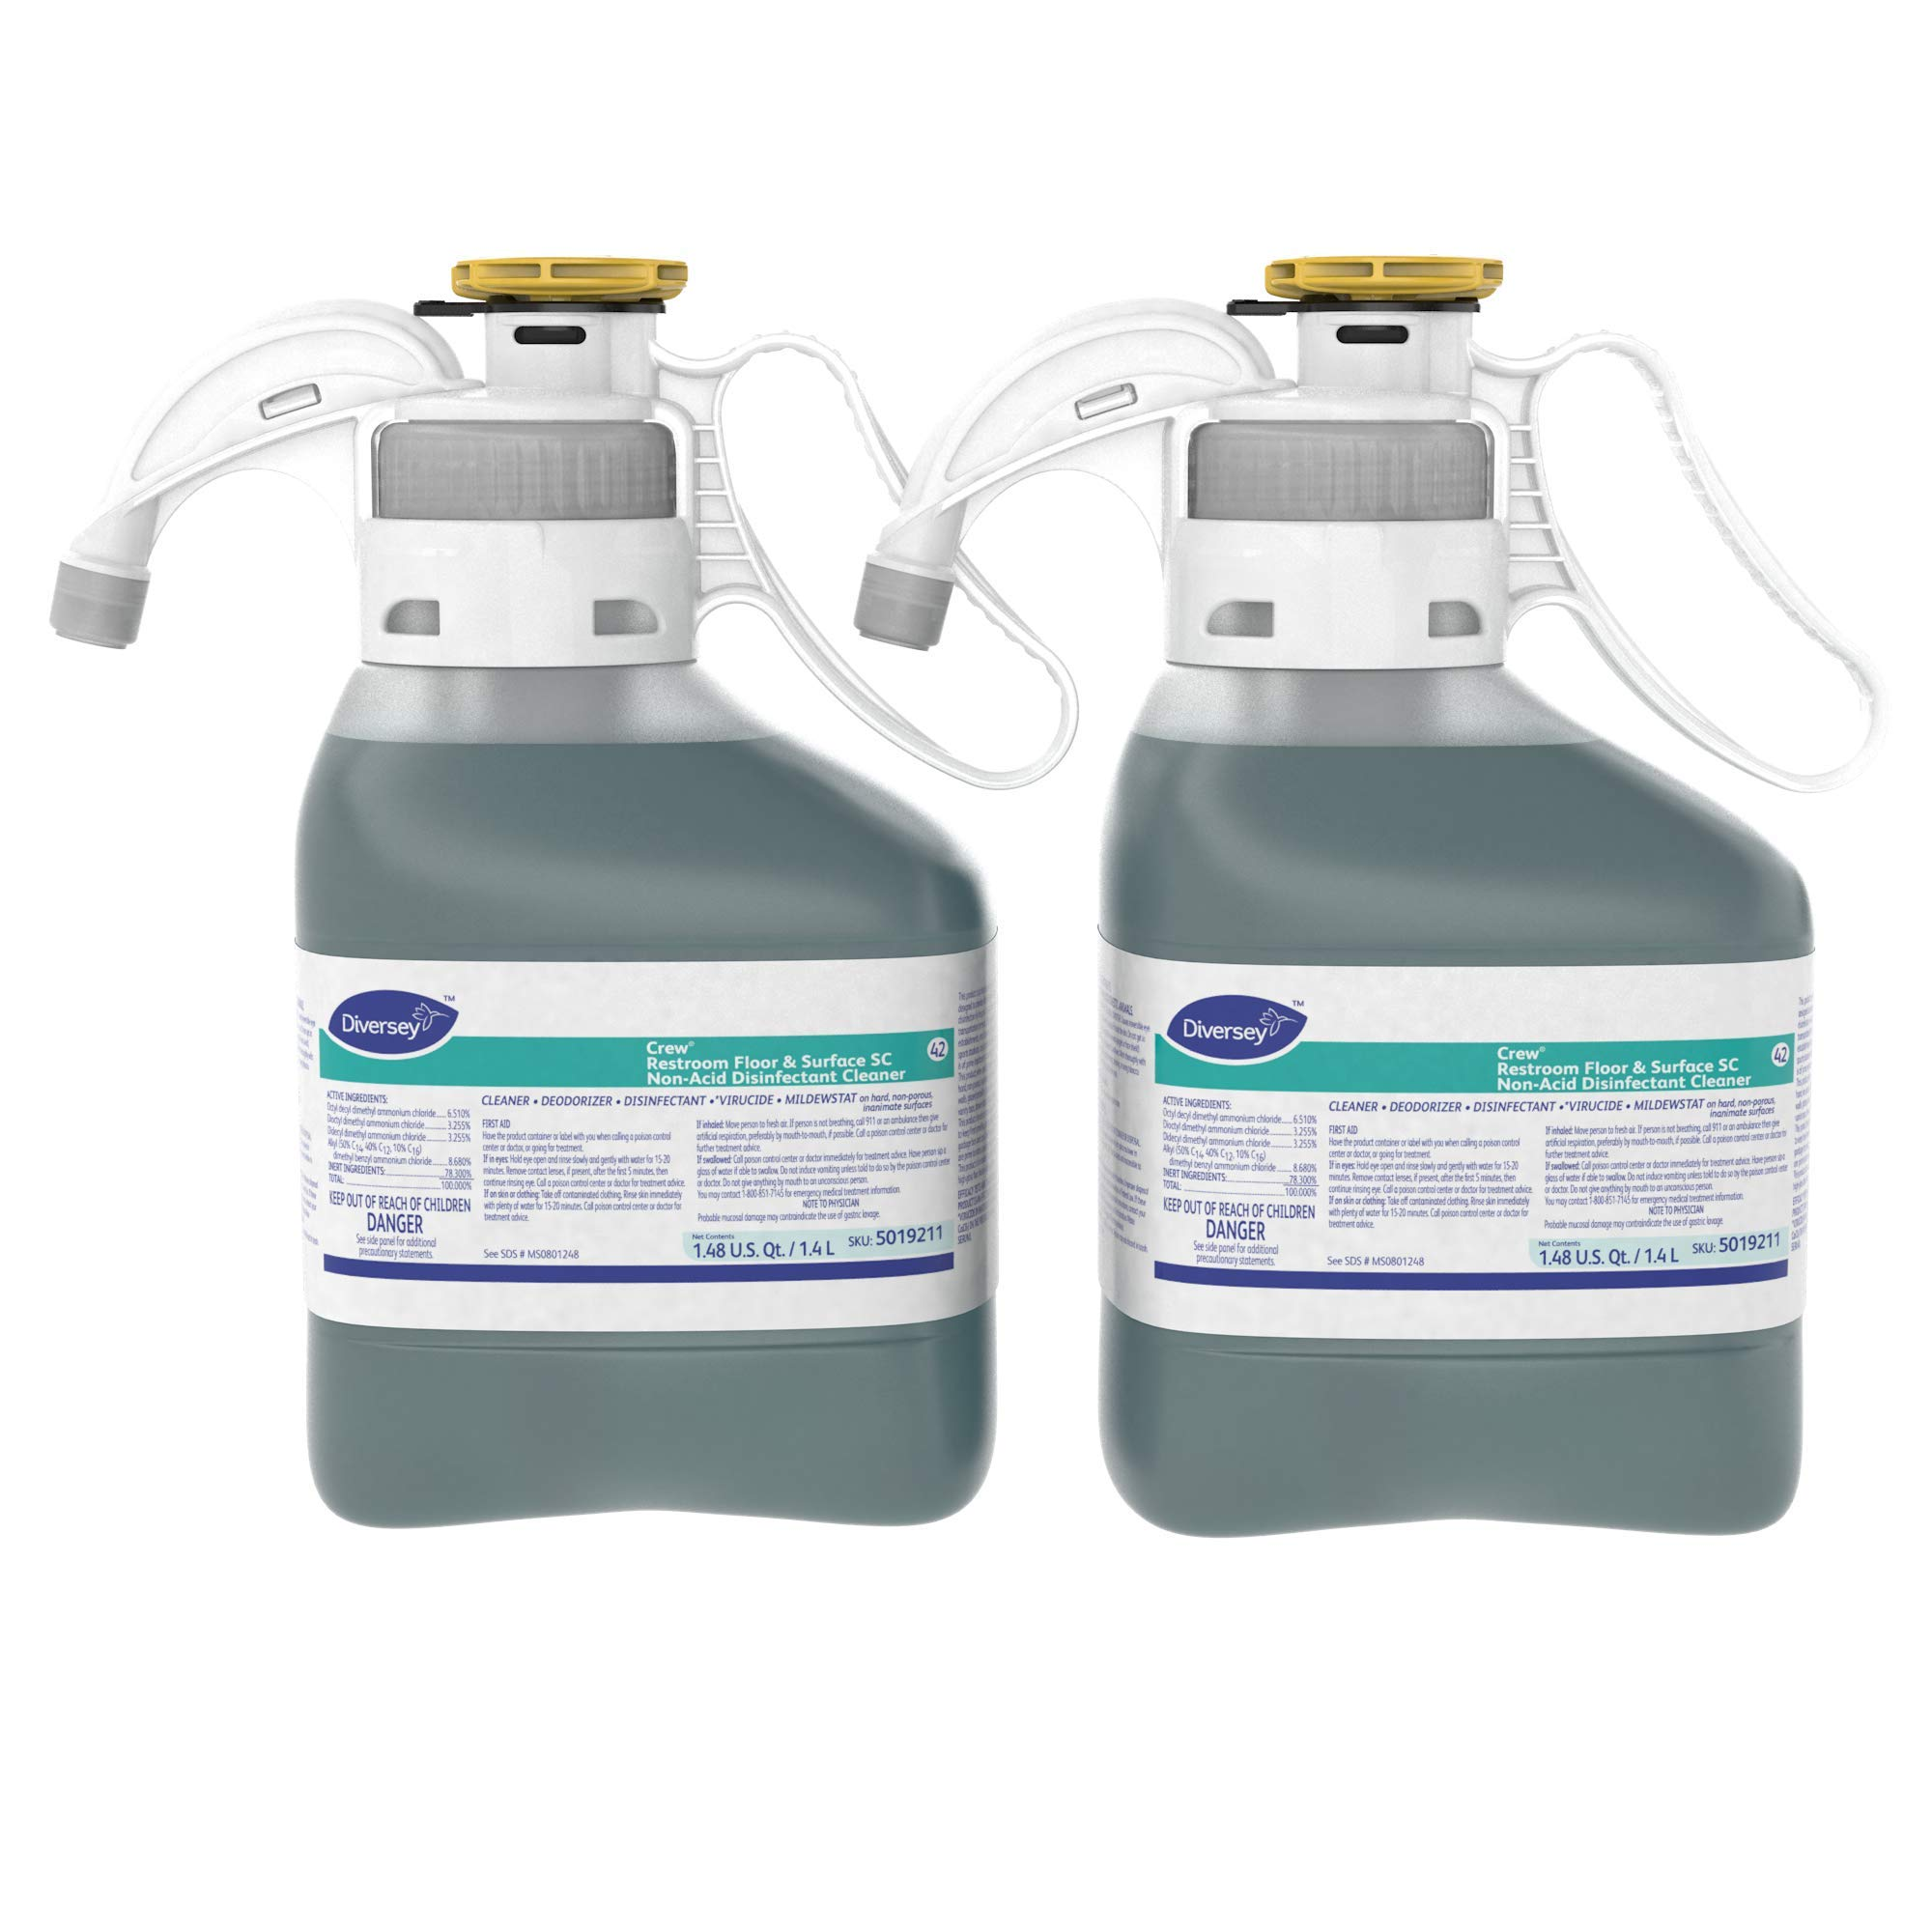 Diversey Crew Restroom Floor and Surface Non-Acid Disinfectant Cleaner